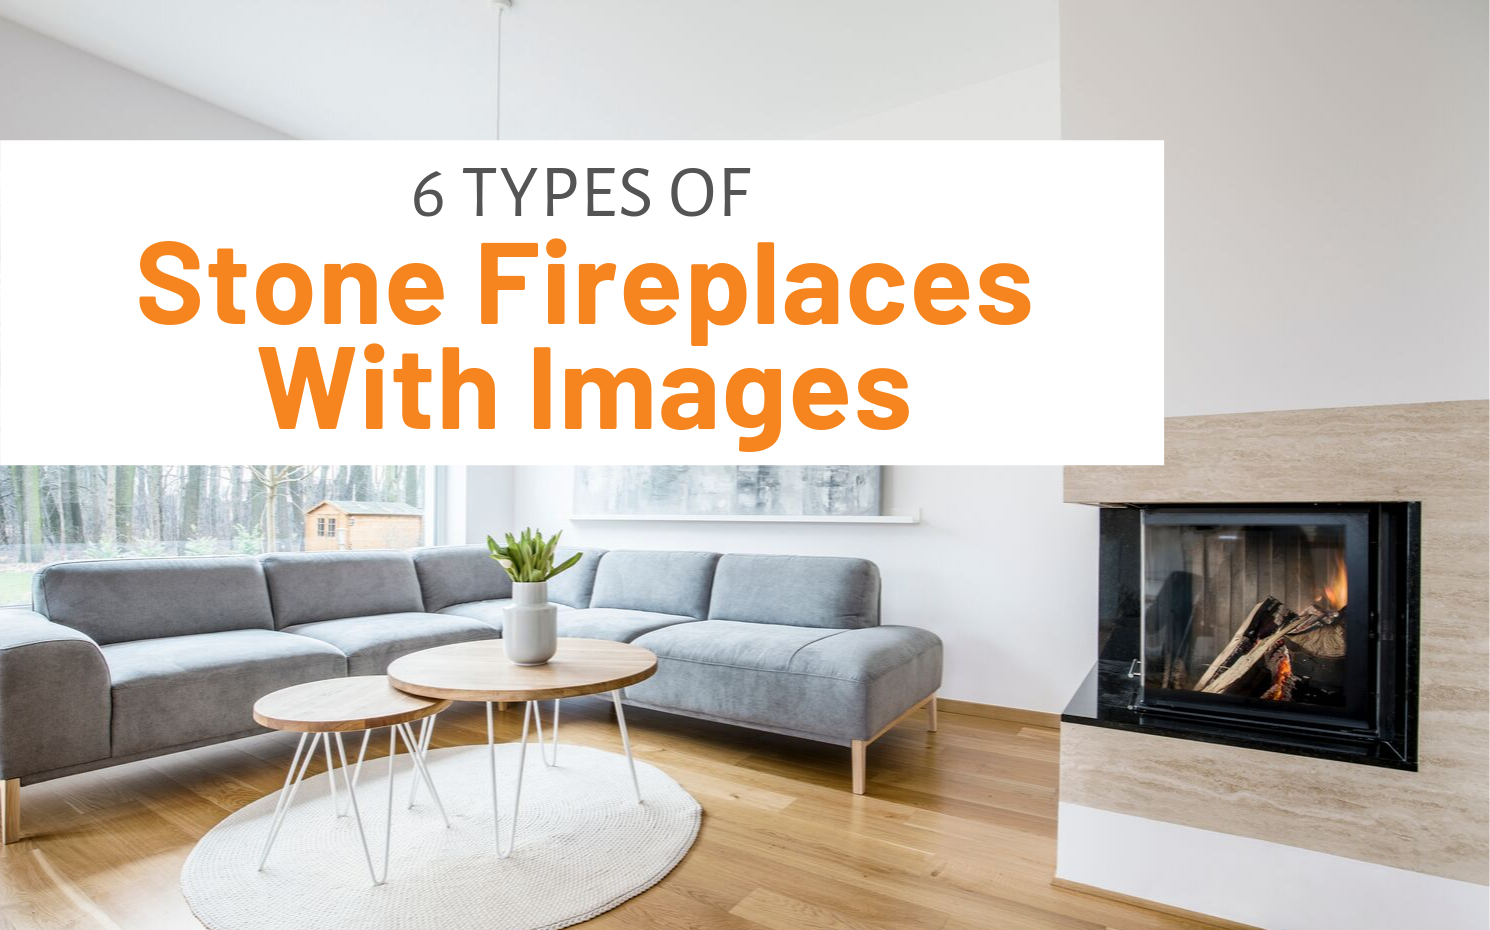 """Featured image for """"6 Types Of Stone Fireplaces With Images"""" blog post"""